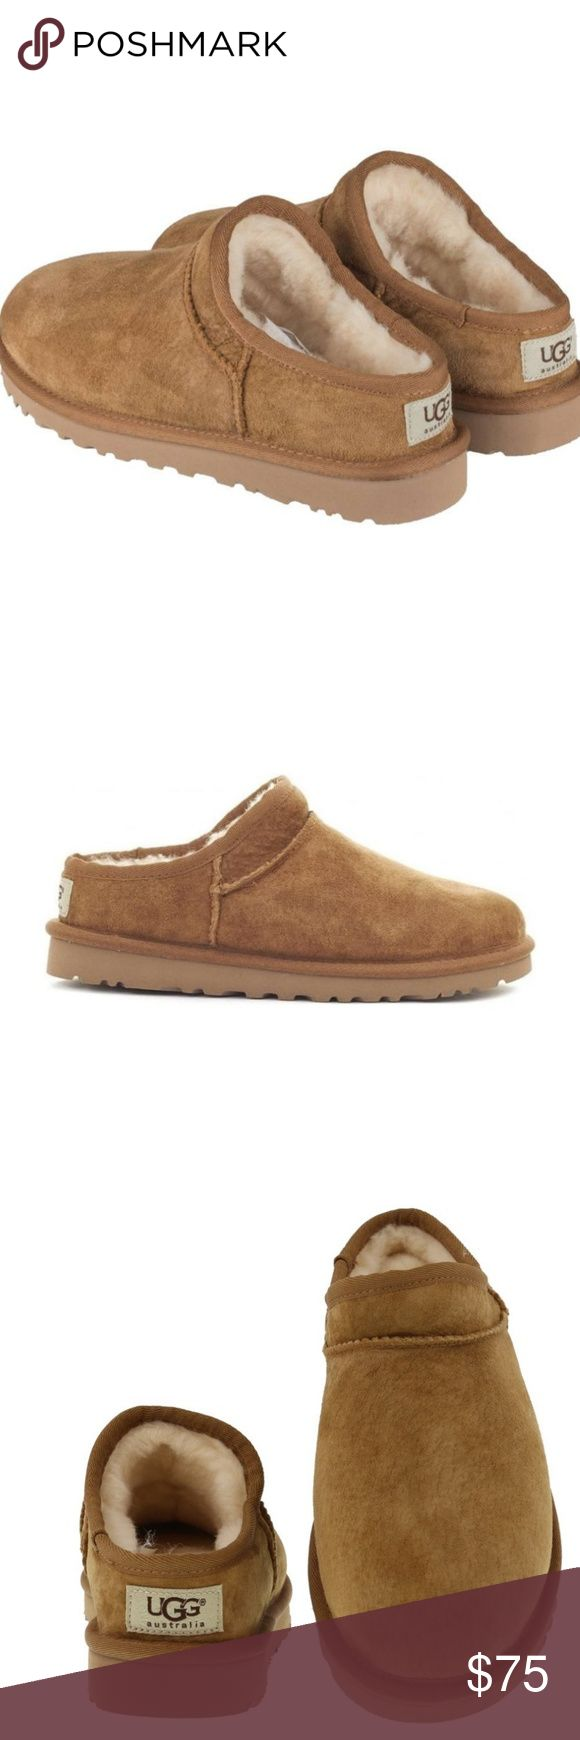 """10/20 ONLYUGG CLASSIC SLIP ON SLIPPER UGG ✔% AUTHENTIC! NEW NEW NEW!!! (NO TAGS-STICKERS ON BOTTOM/NO BOX) COLOR CHESNUT SIZE VARIOUS CLASSIC CLEAN LOOK! TONAL MOCCASIN STITCHING DETAIL TRUE TO SIZE(WILL BREAK IN AND STRETCH TO FOOT) ROUND TOE,WATER RESISTANT SUEDE CONSTRUCTION,SLIP ON,UGGPURE LINING APPROX HEEL 1""""/.5"""" PLATFORM EVA SOLE -STURDY FOR OUTDOOR WEAR! GREAT FOR ANY WARDROBE ANY TIME OF THE YEAR! *NO TRADES NO RETURNS PLEASE* UGG Shoes"""